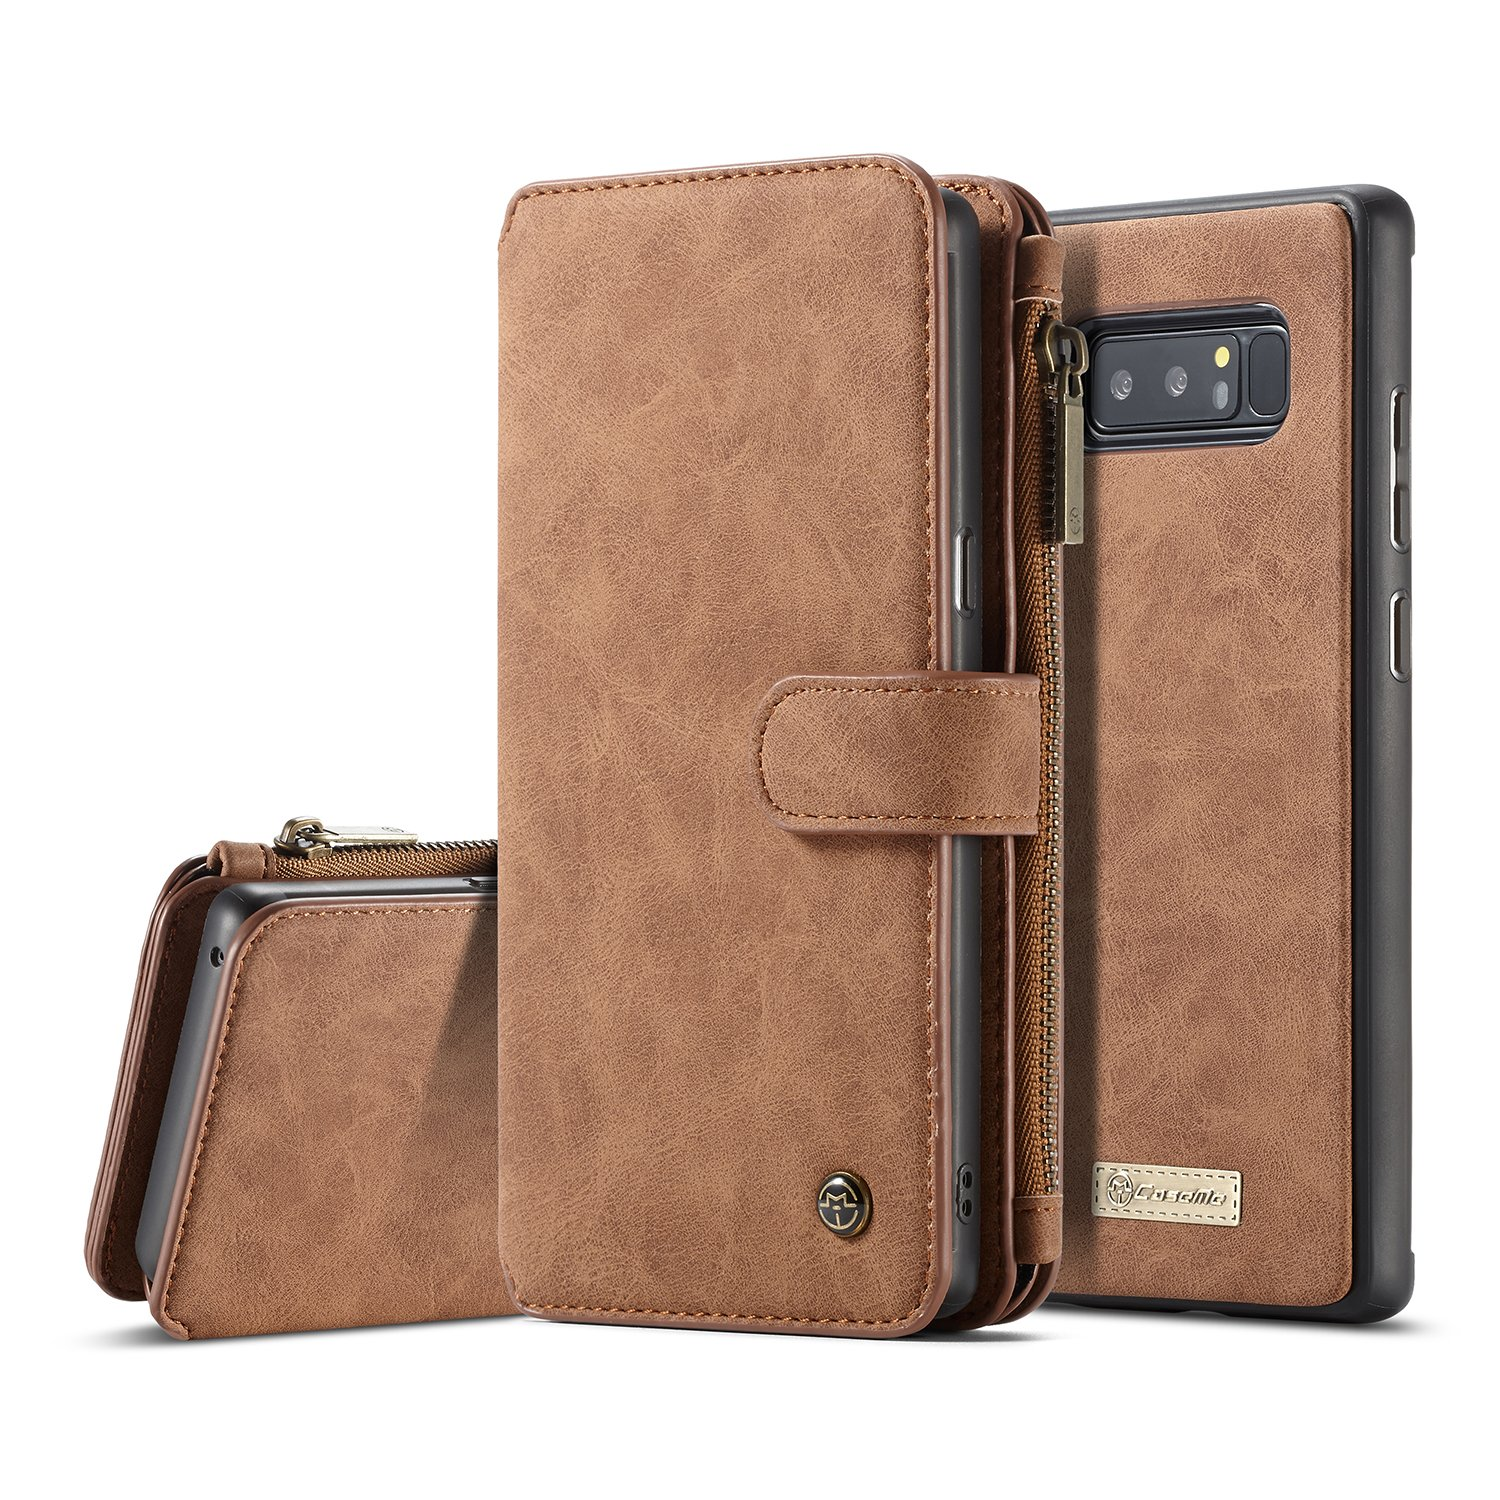 quality design f7b66 f5df5 XRPow Galaxy Note 8 Magnetic Detachable Wallet Case Premium Back Cover Slim  Leather Folio Wallet Holder Case for Samsung Galaxy Note 8 Brown